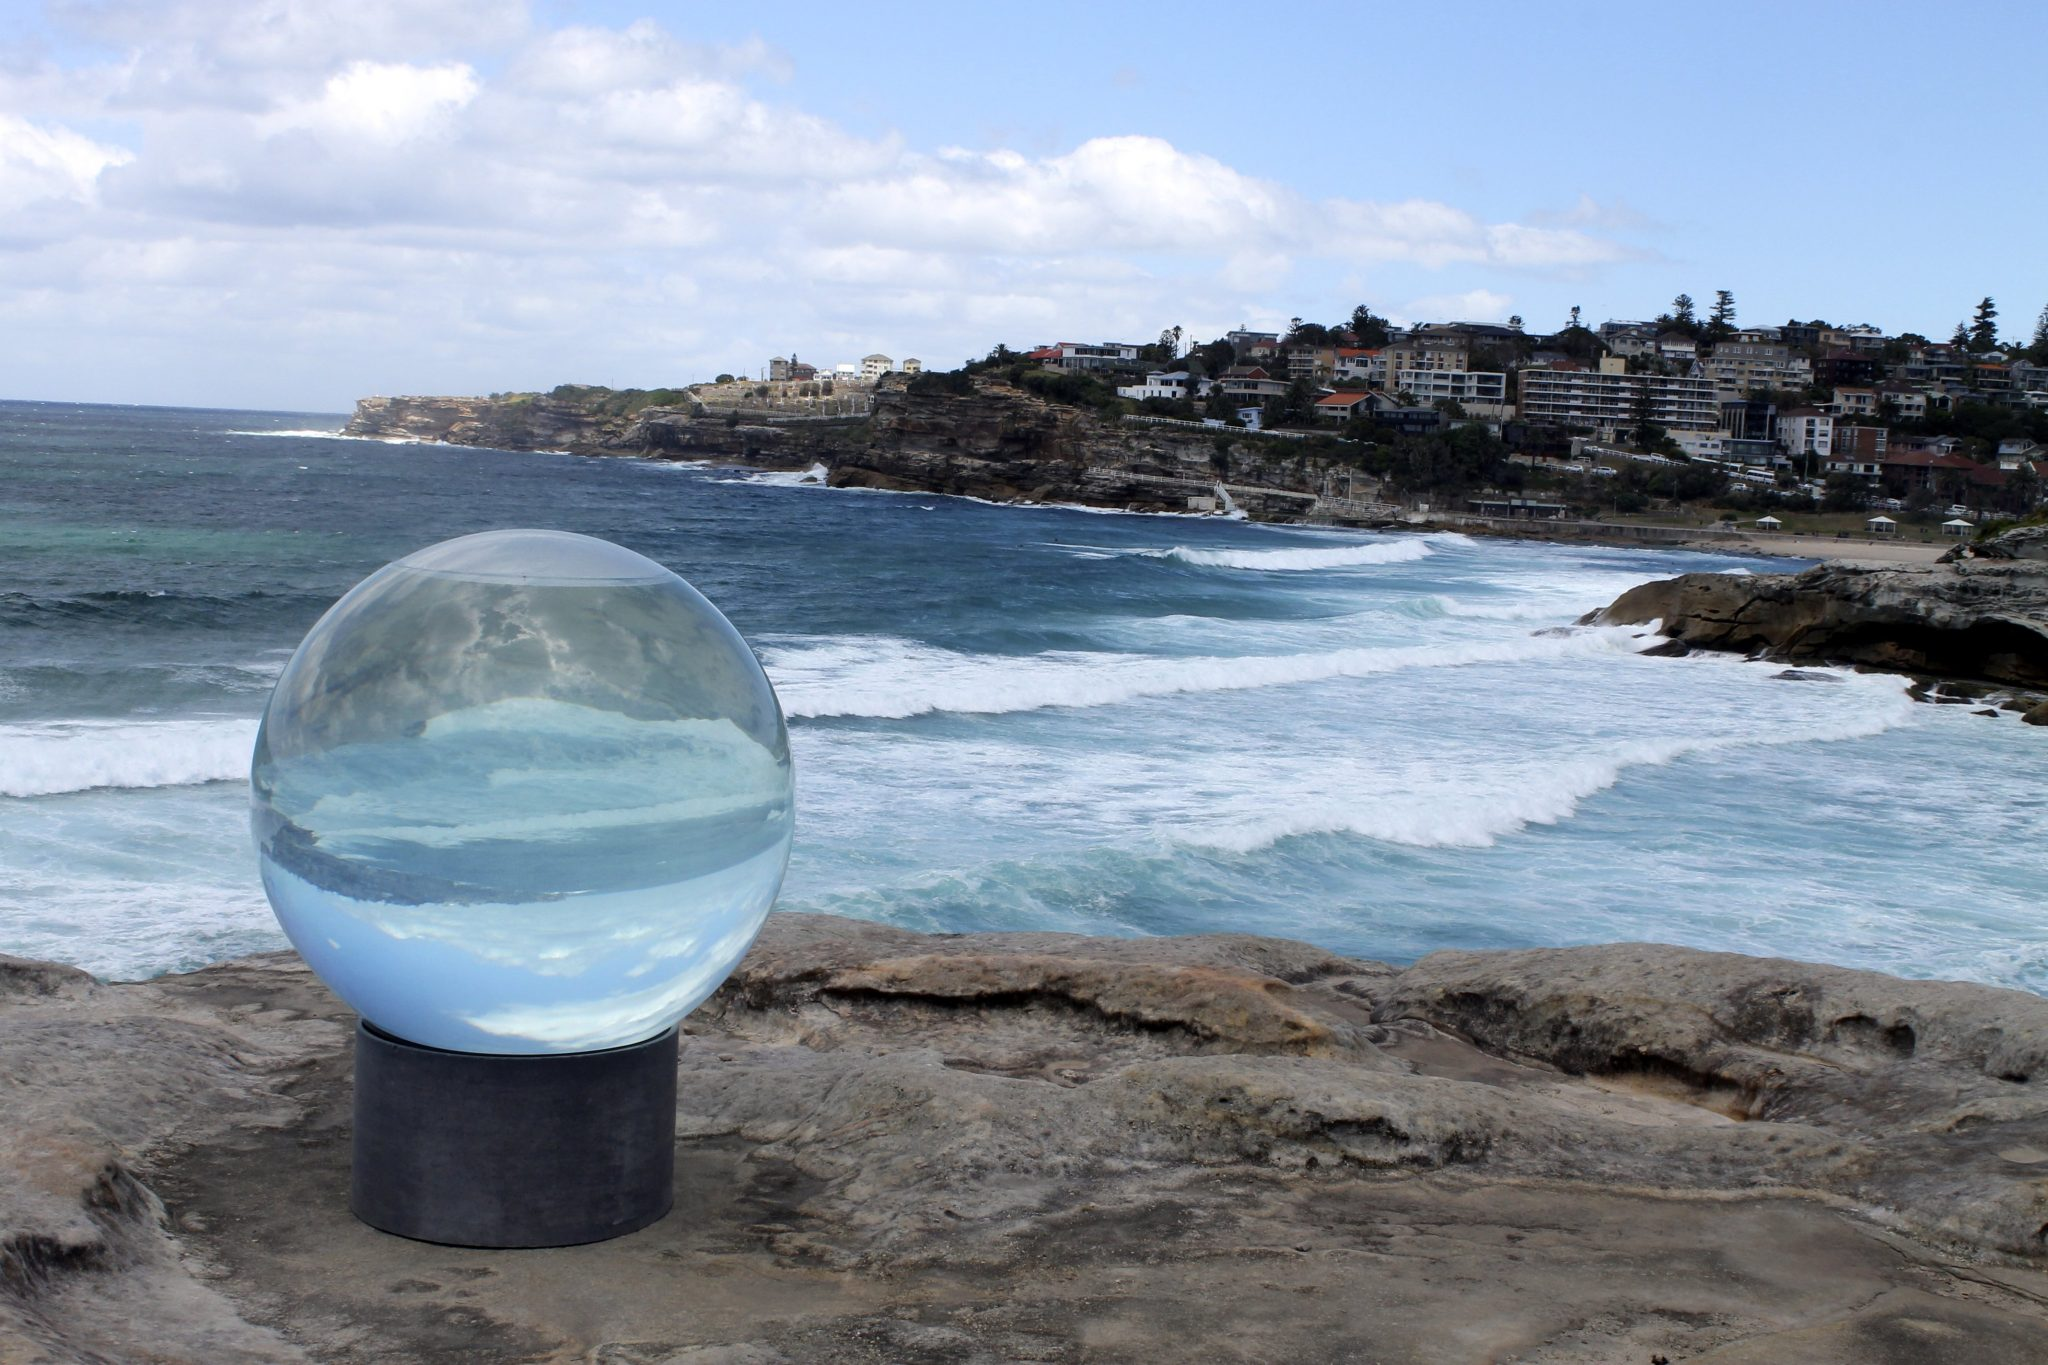 Sculpture by the Sea in Sydney, Australia